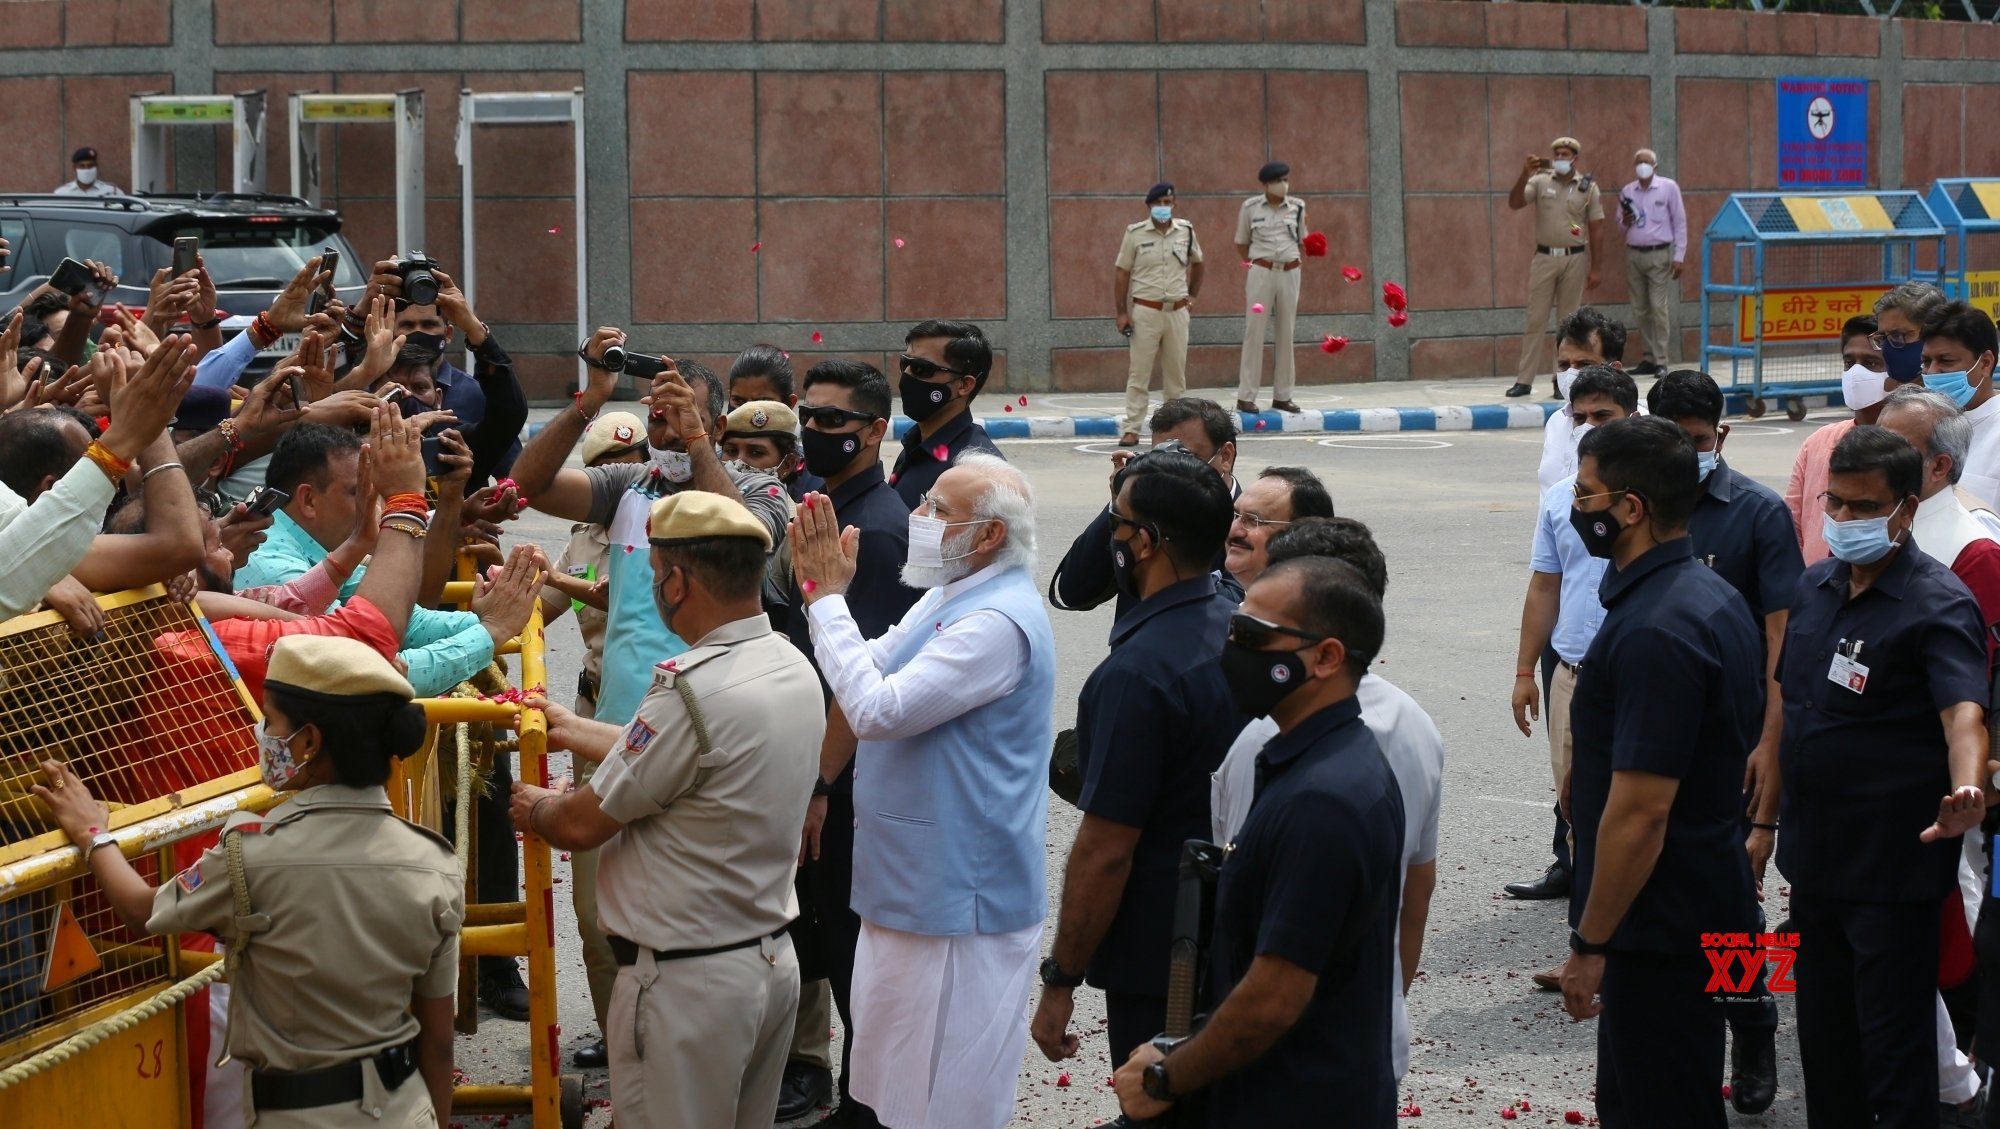 New Delhi: Prime minister Narendra Modi welcomed by party leaders and supporters after visit to US at Palam Airport in New Delhi. #Gallery